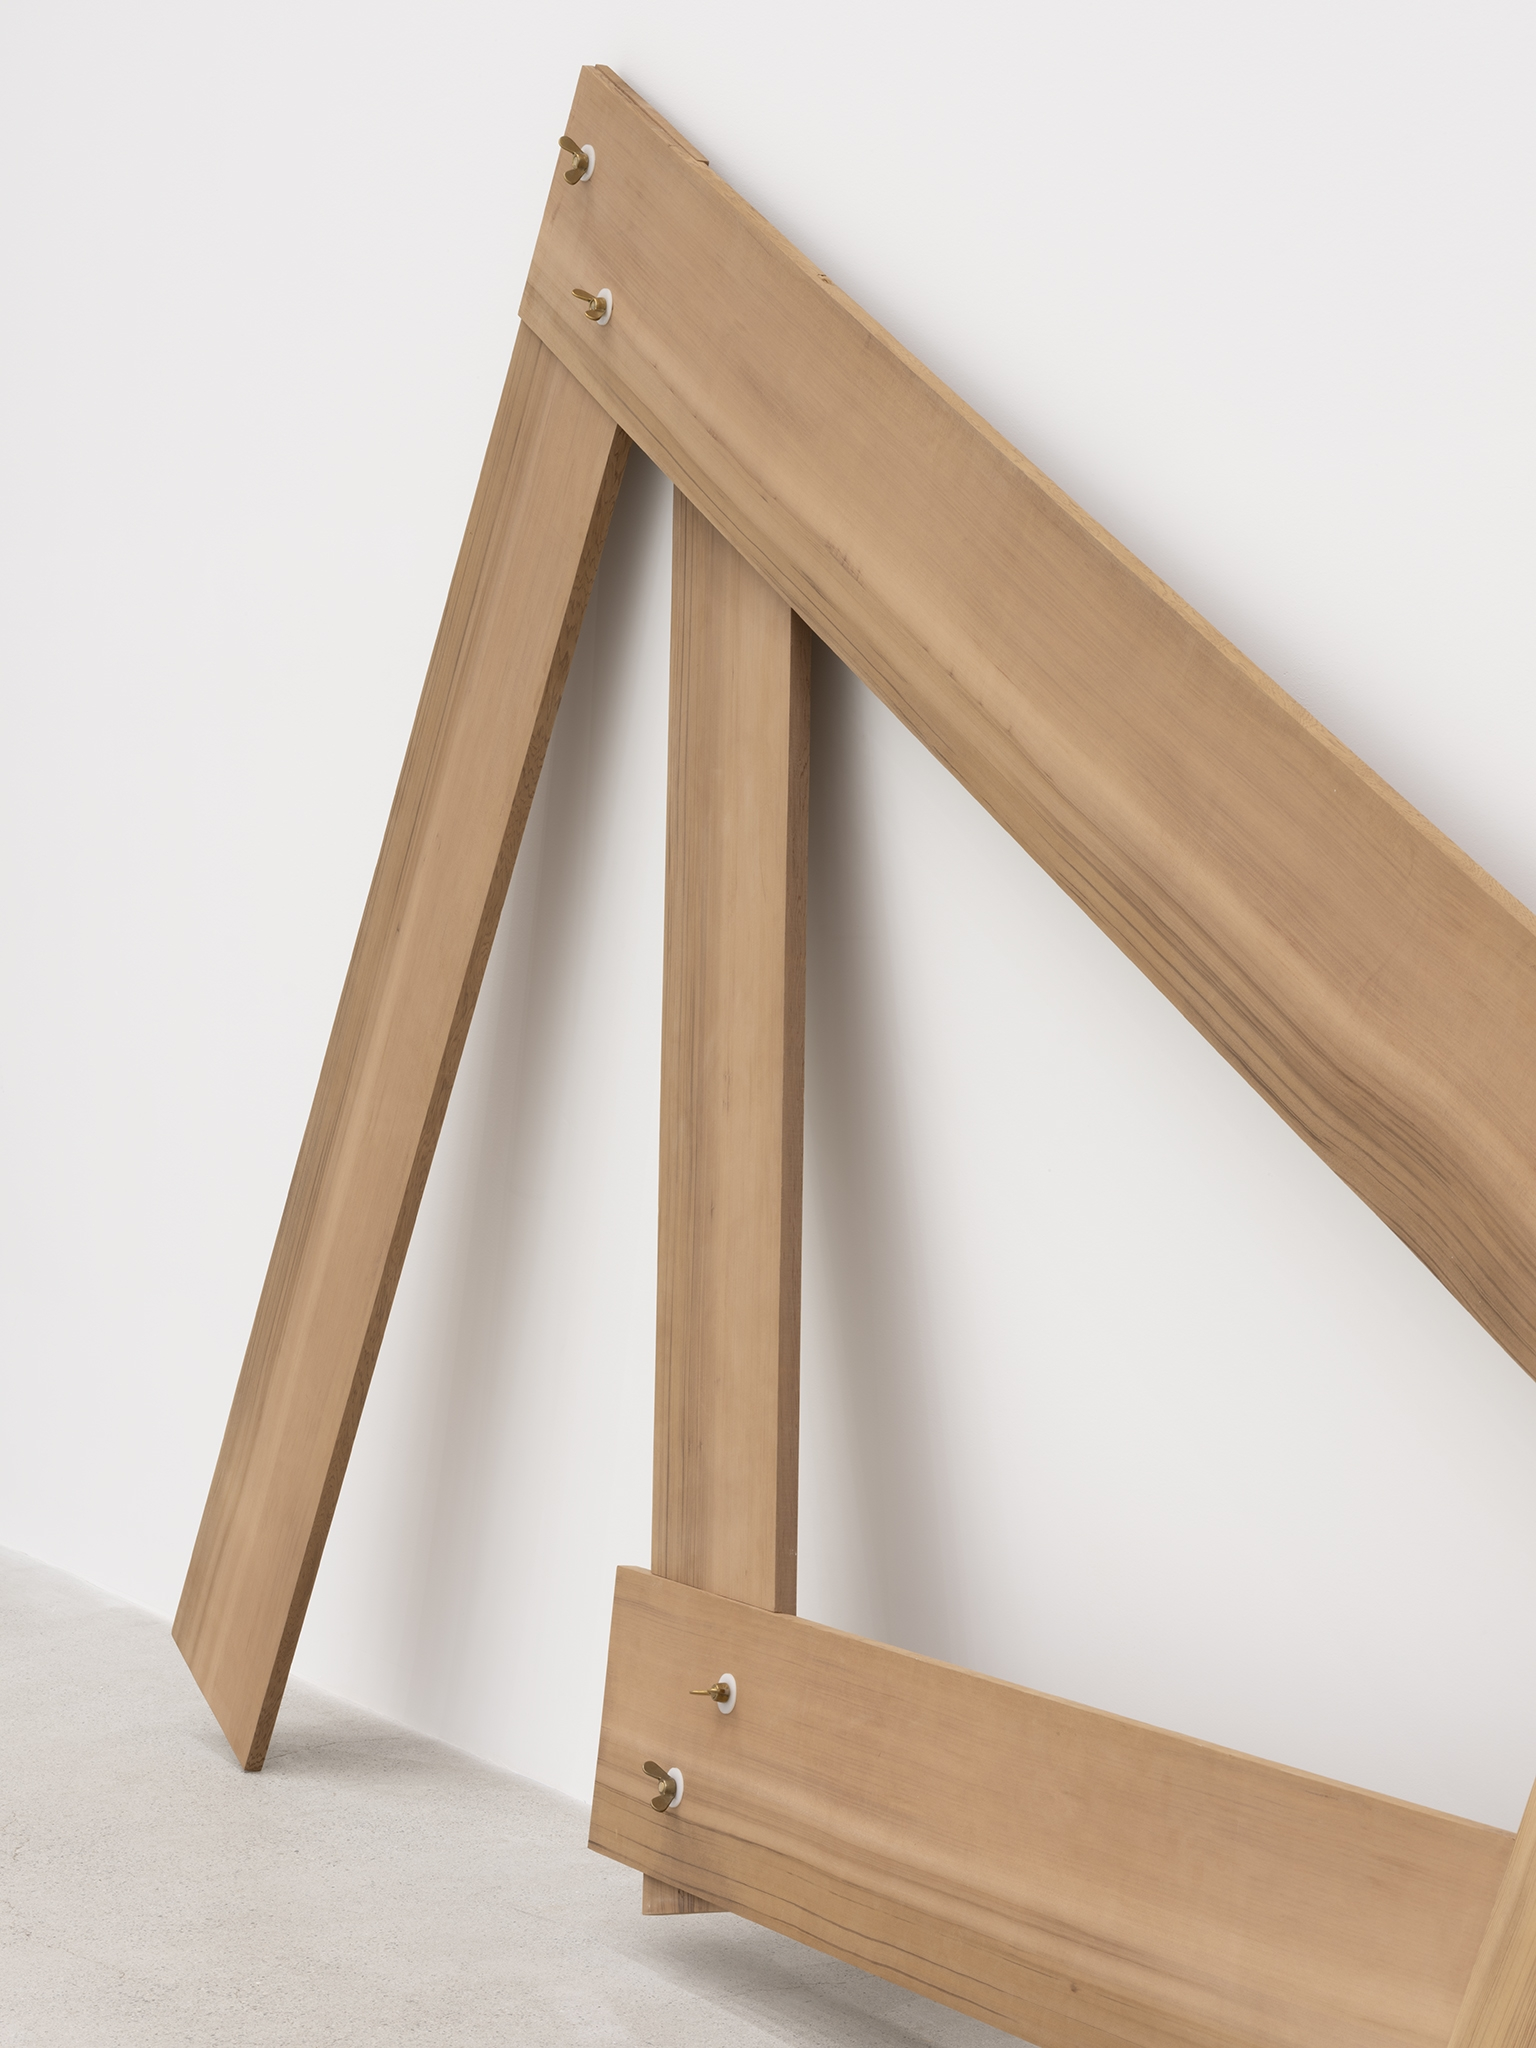 Christina Mackie, Lots/lost (The confusion part I) (detail), 2012, cedar, brass, nylon, 94 x 388 x 19 in. (238 x 986 x 48 cm) by